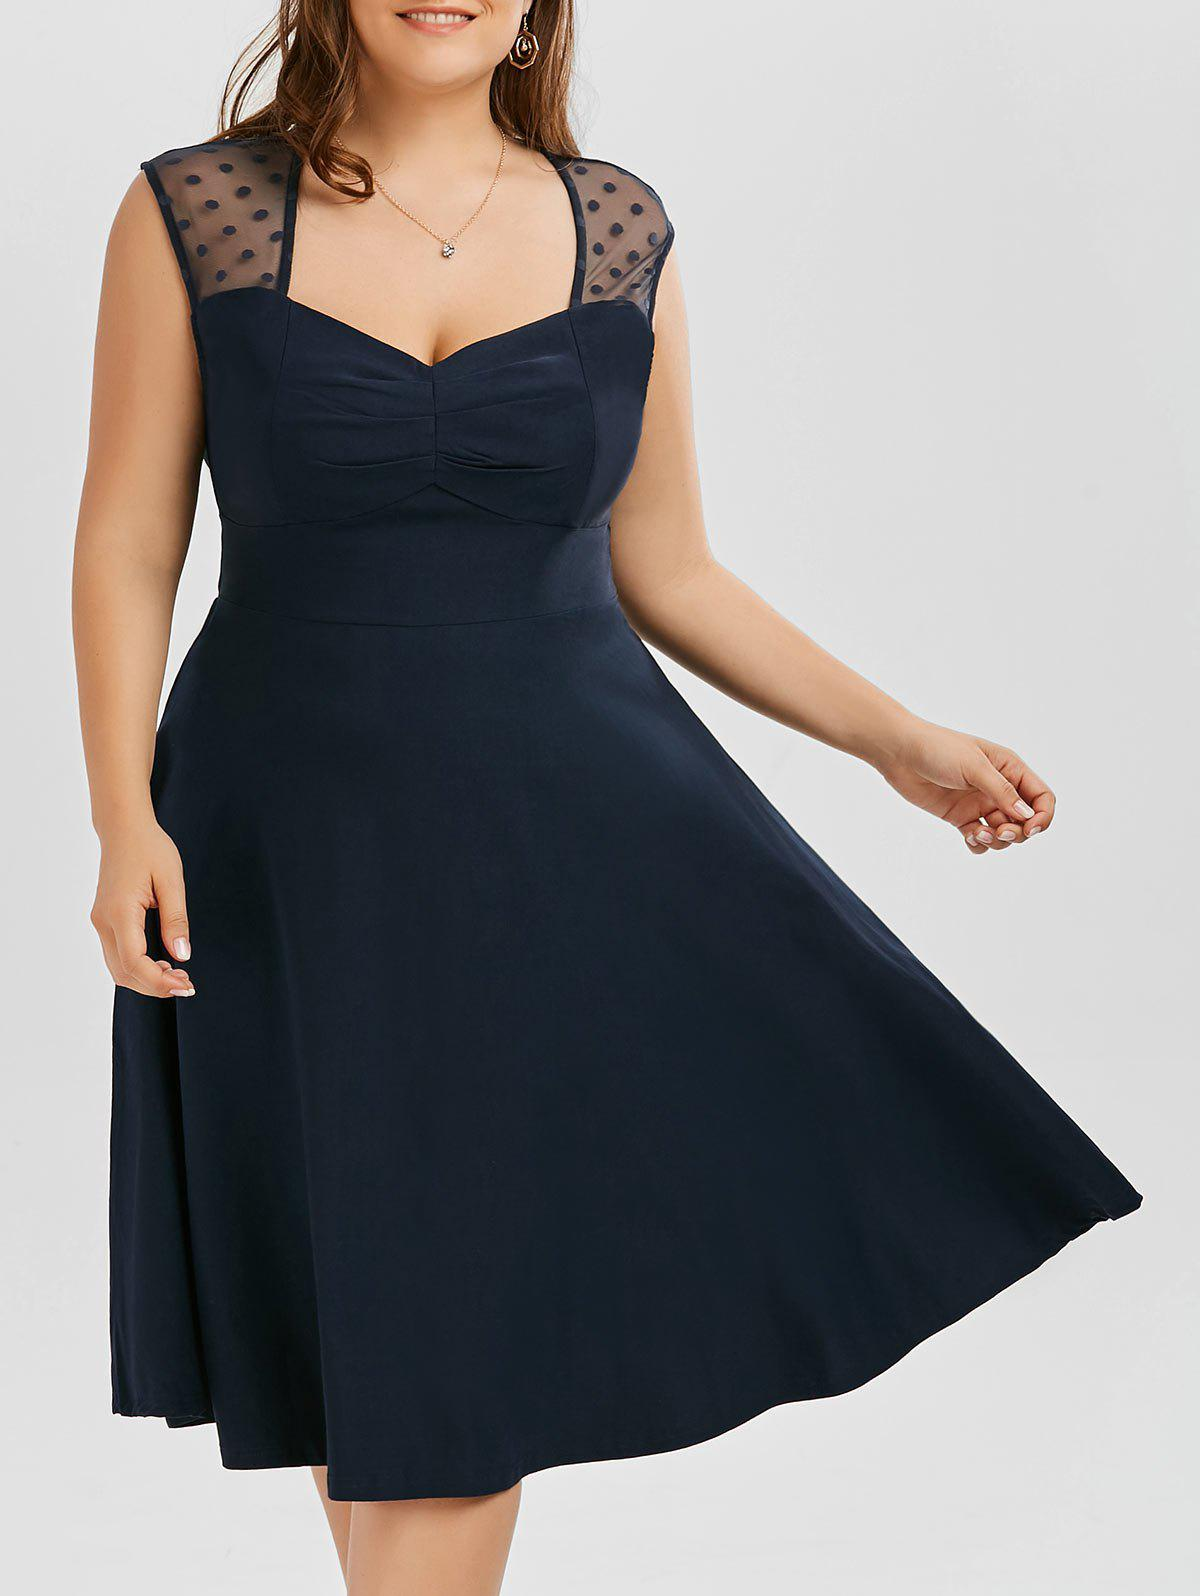 A Line Mesh Trim Plus Size Sweetheart DressWOMEN<br><br>Size: 5XL; Color: PURPLISH BLUE; Style: Brief; Material: Polyester; Silhouette: A-Line; Dresses Length: Knee-Length; Neckline: Sweetheart Neck; Sleeve Length: Sleeveless; Pattern Type: Polka Dot; With Belt: No; Season: Summer; Weight: 0.5200kg; Package Contents: 1 x Dress;